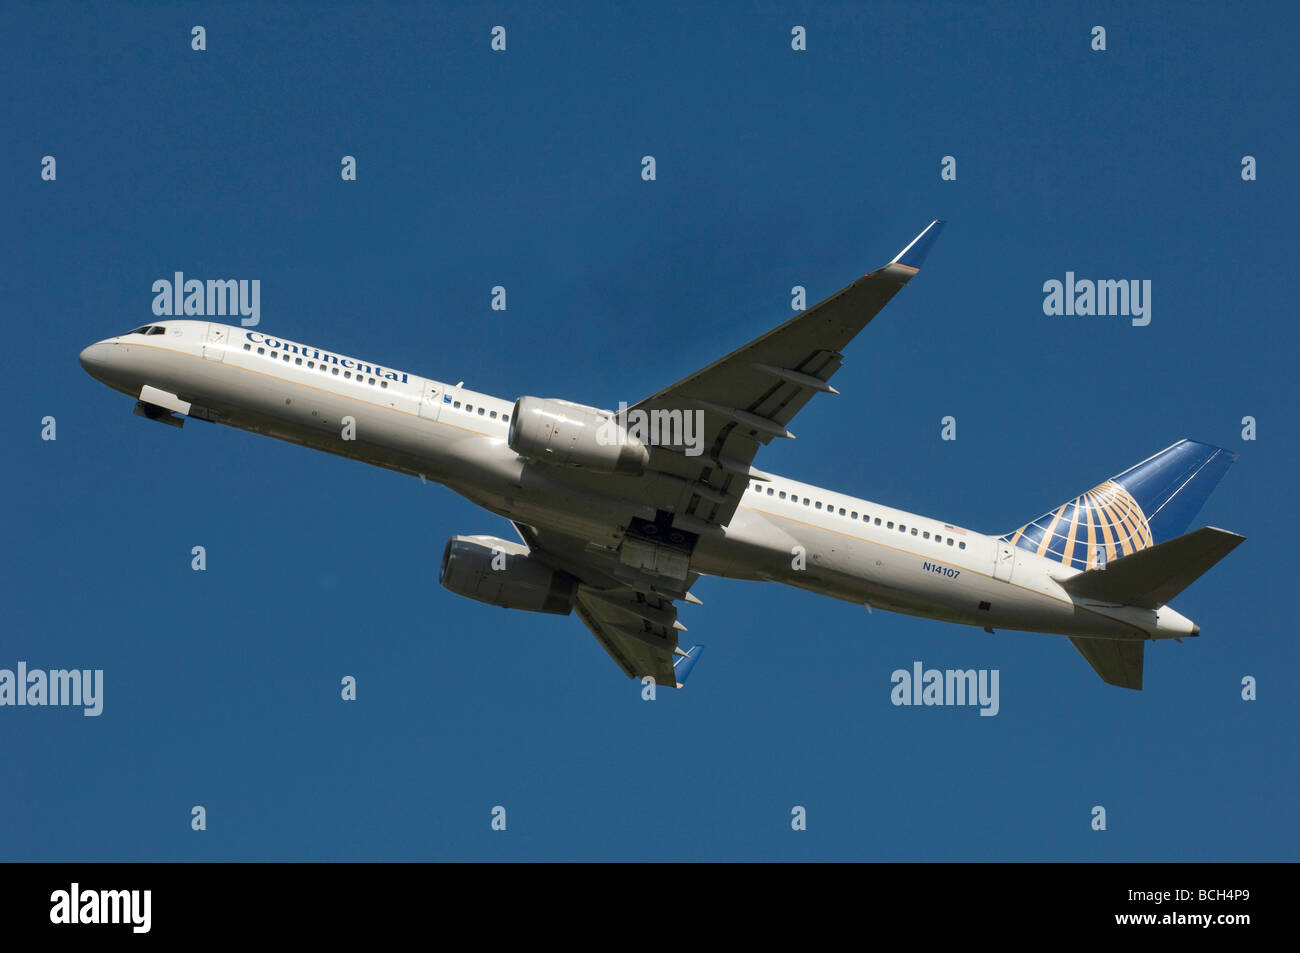 A Continental Airlines Boeing 757 Jet Airplane - Stock Image